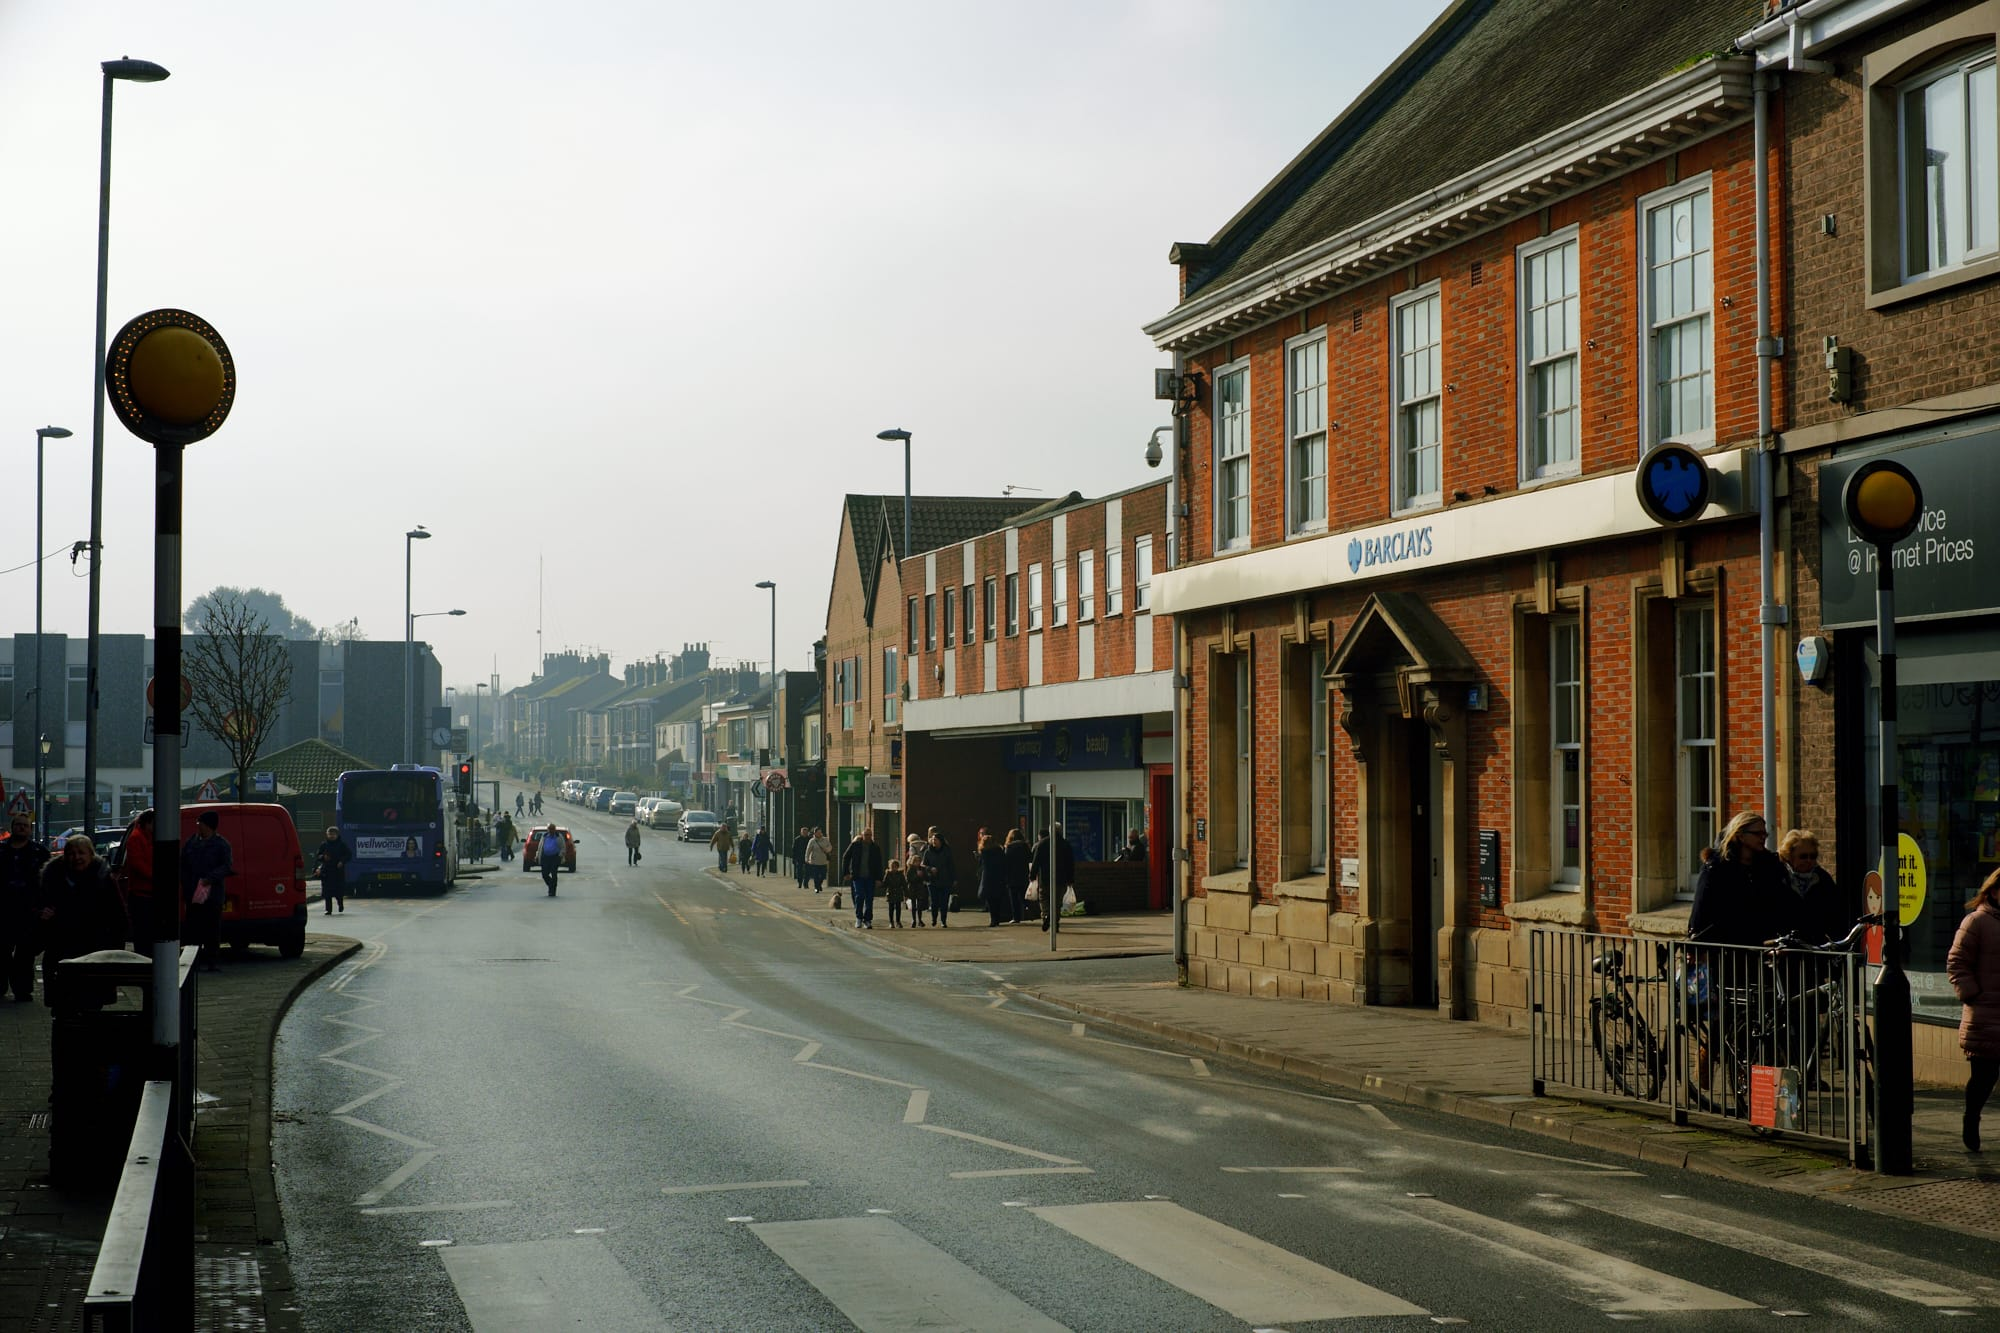 view south along Lowestoft Road from the town centre